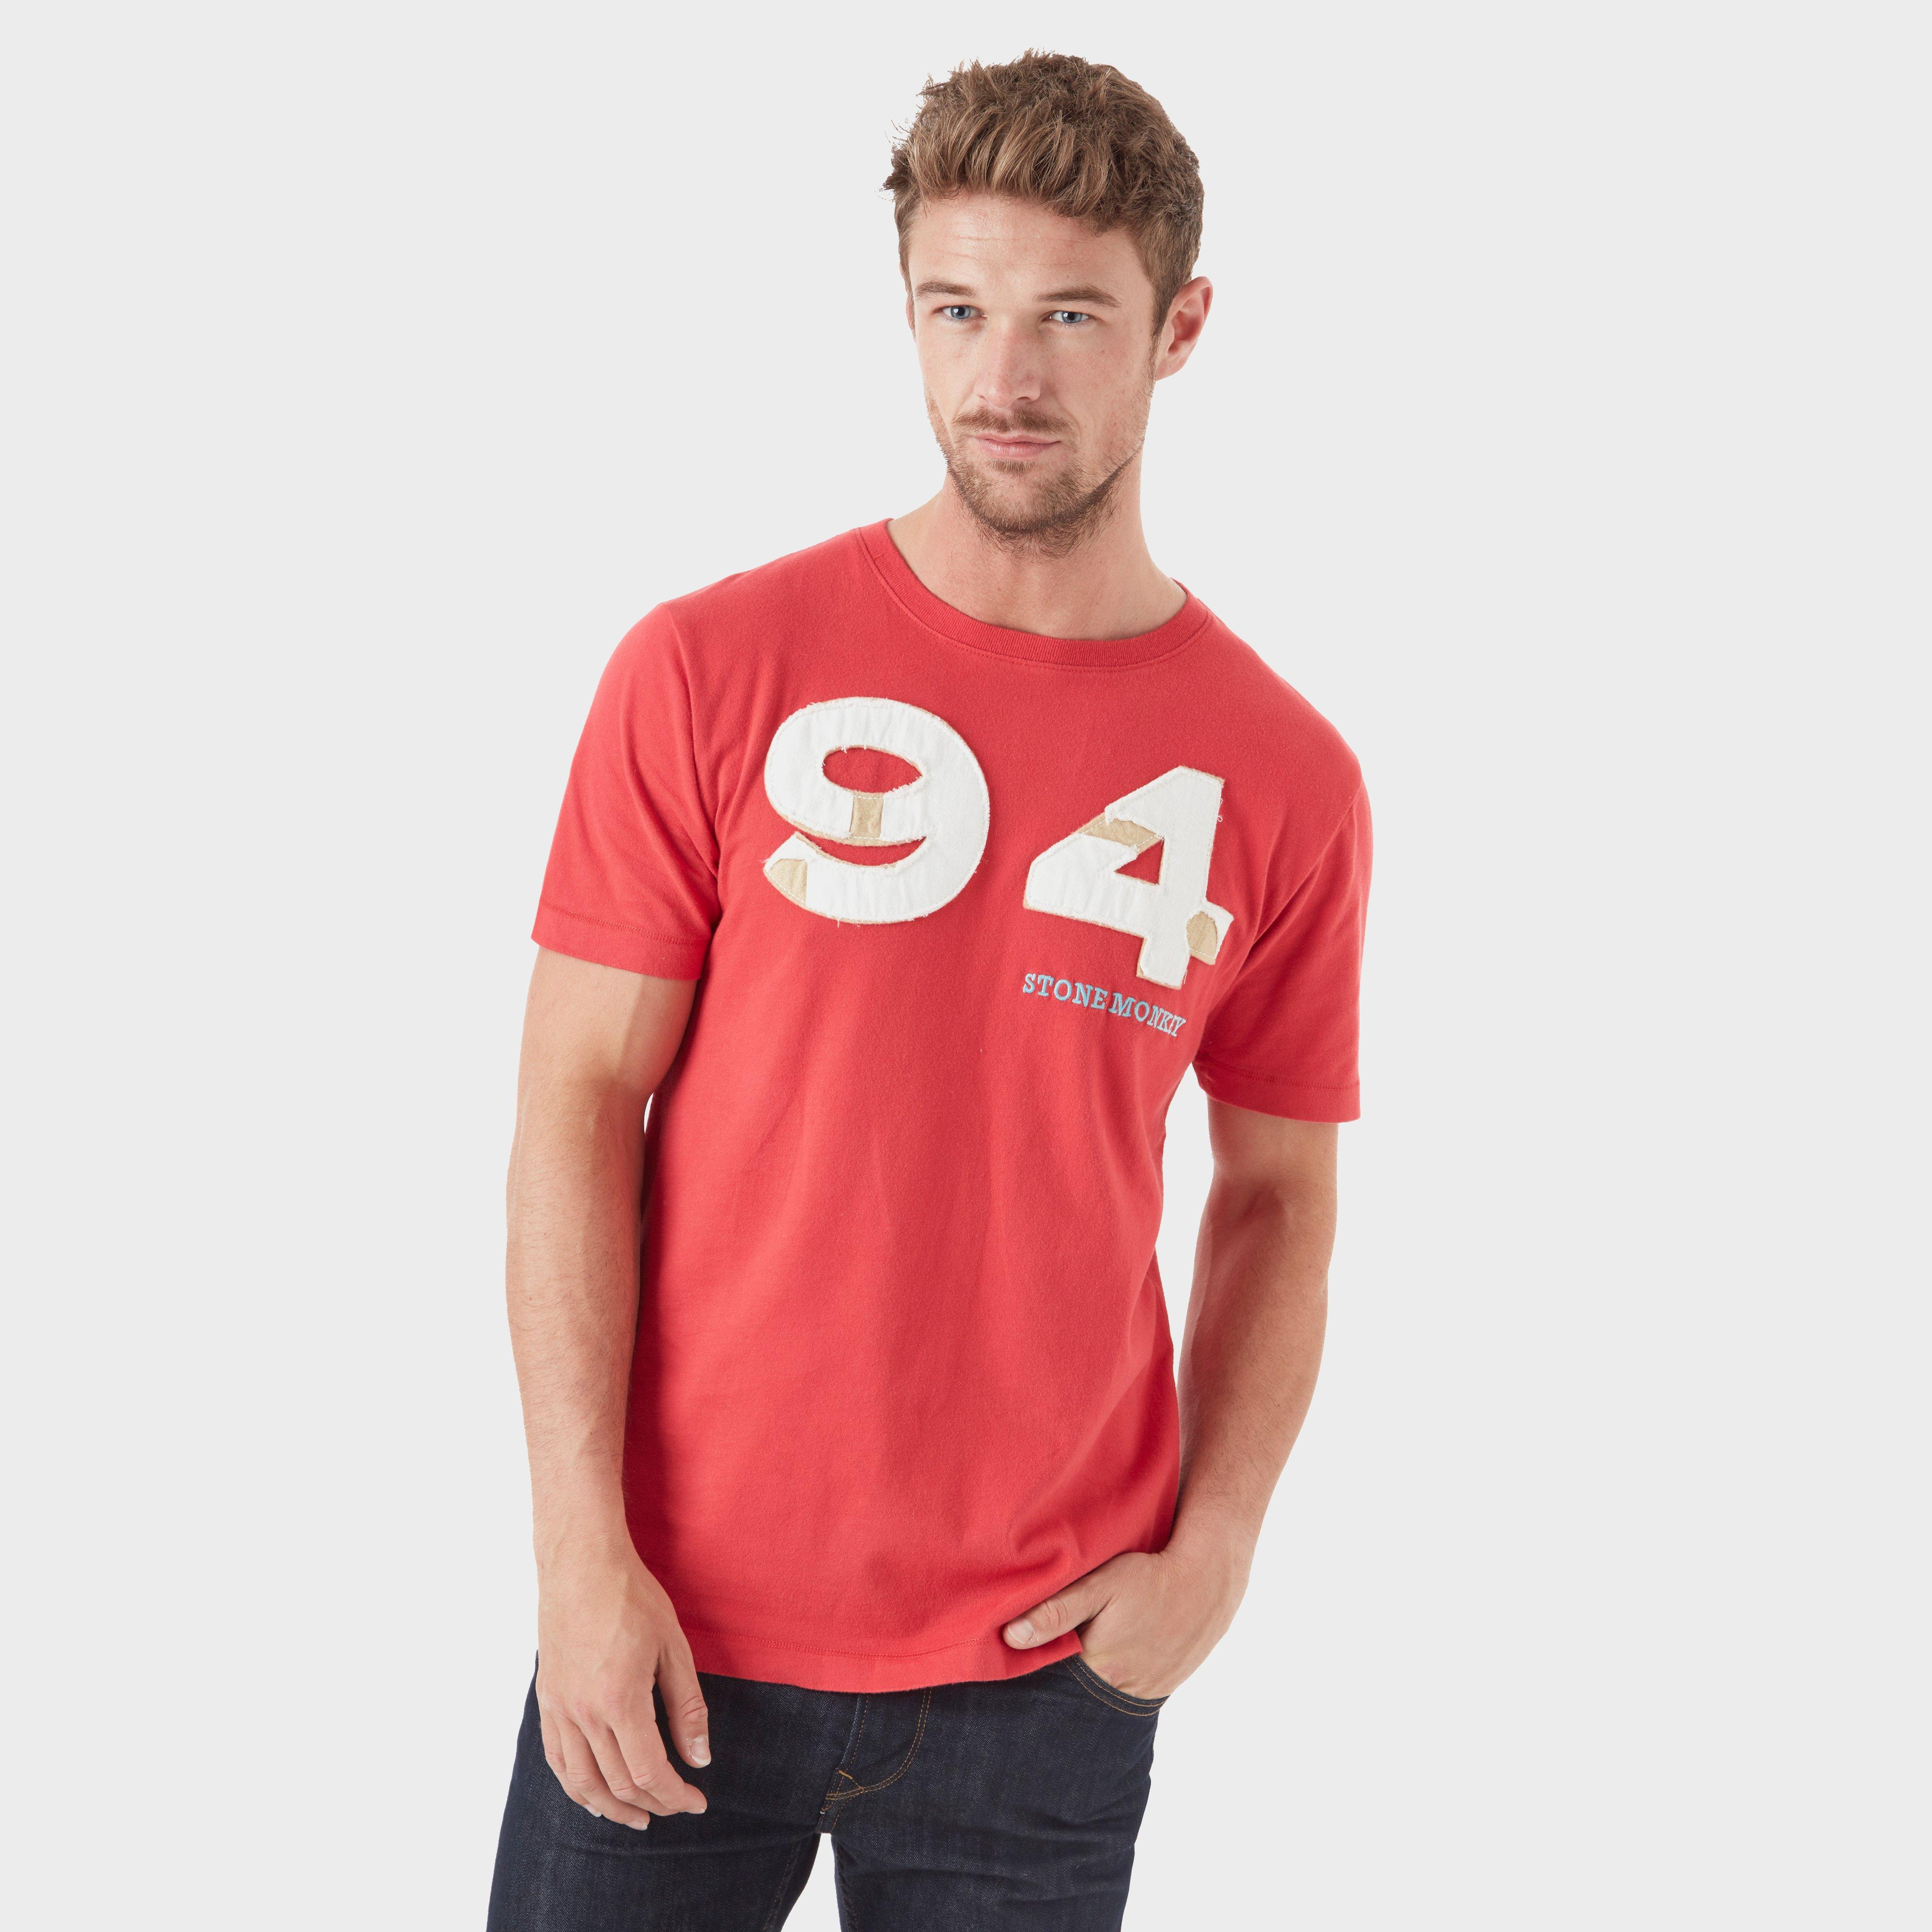 Stone Monkey Stone Monkey Mens 94 Tee - Red, Red